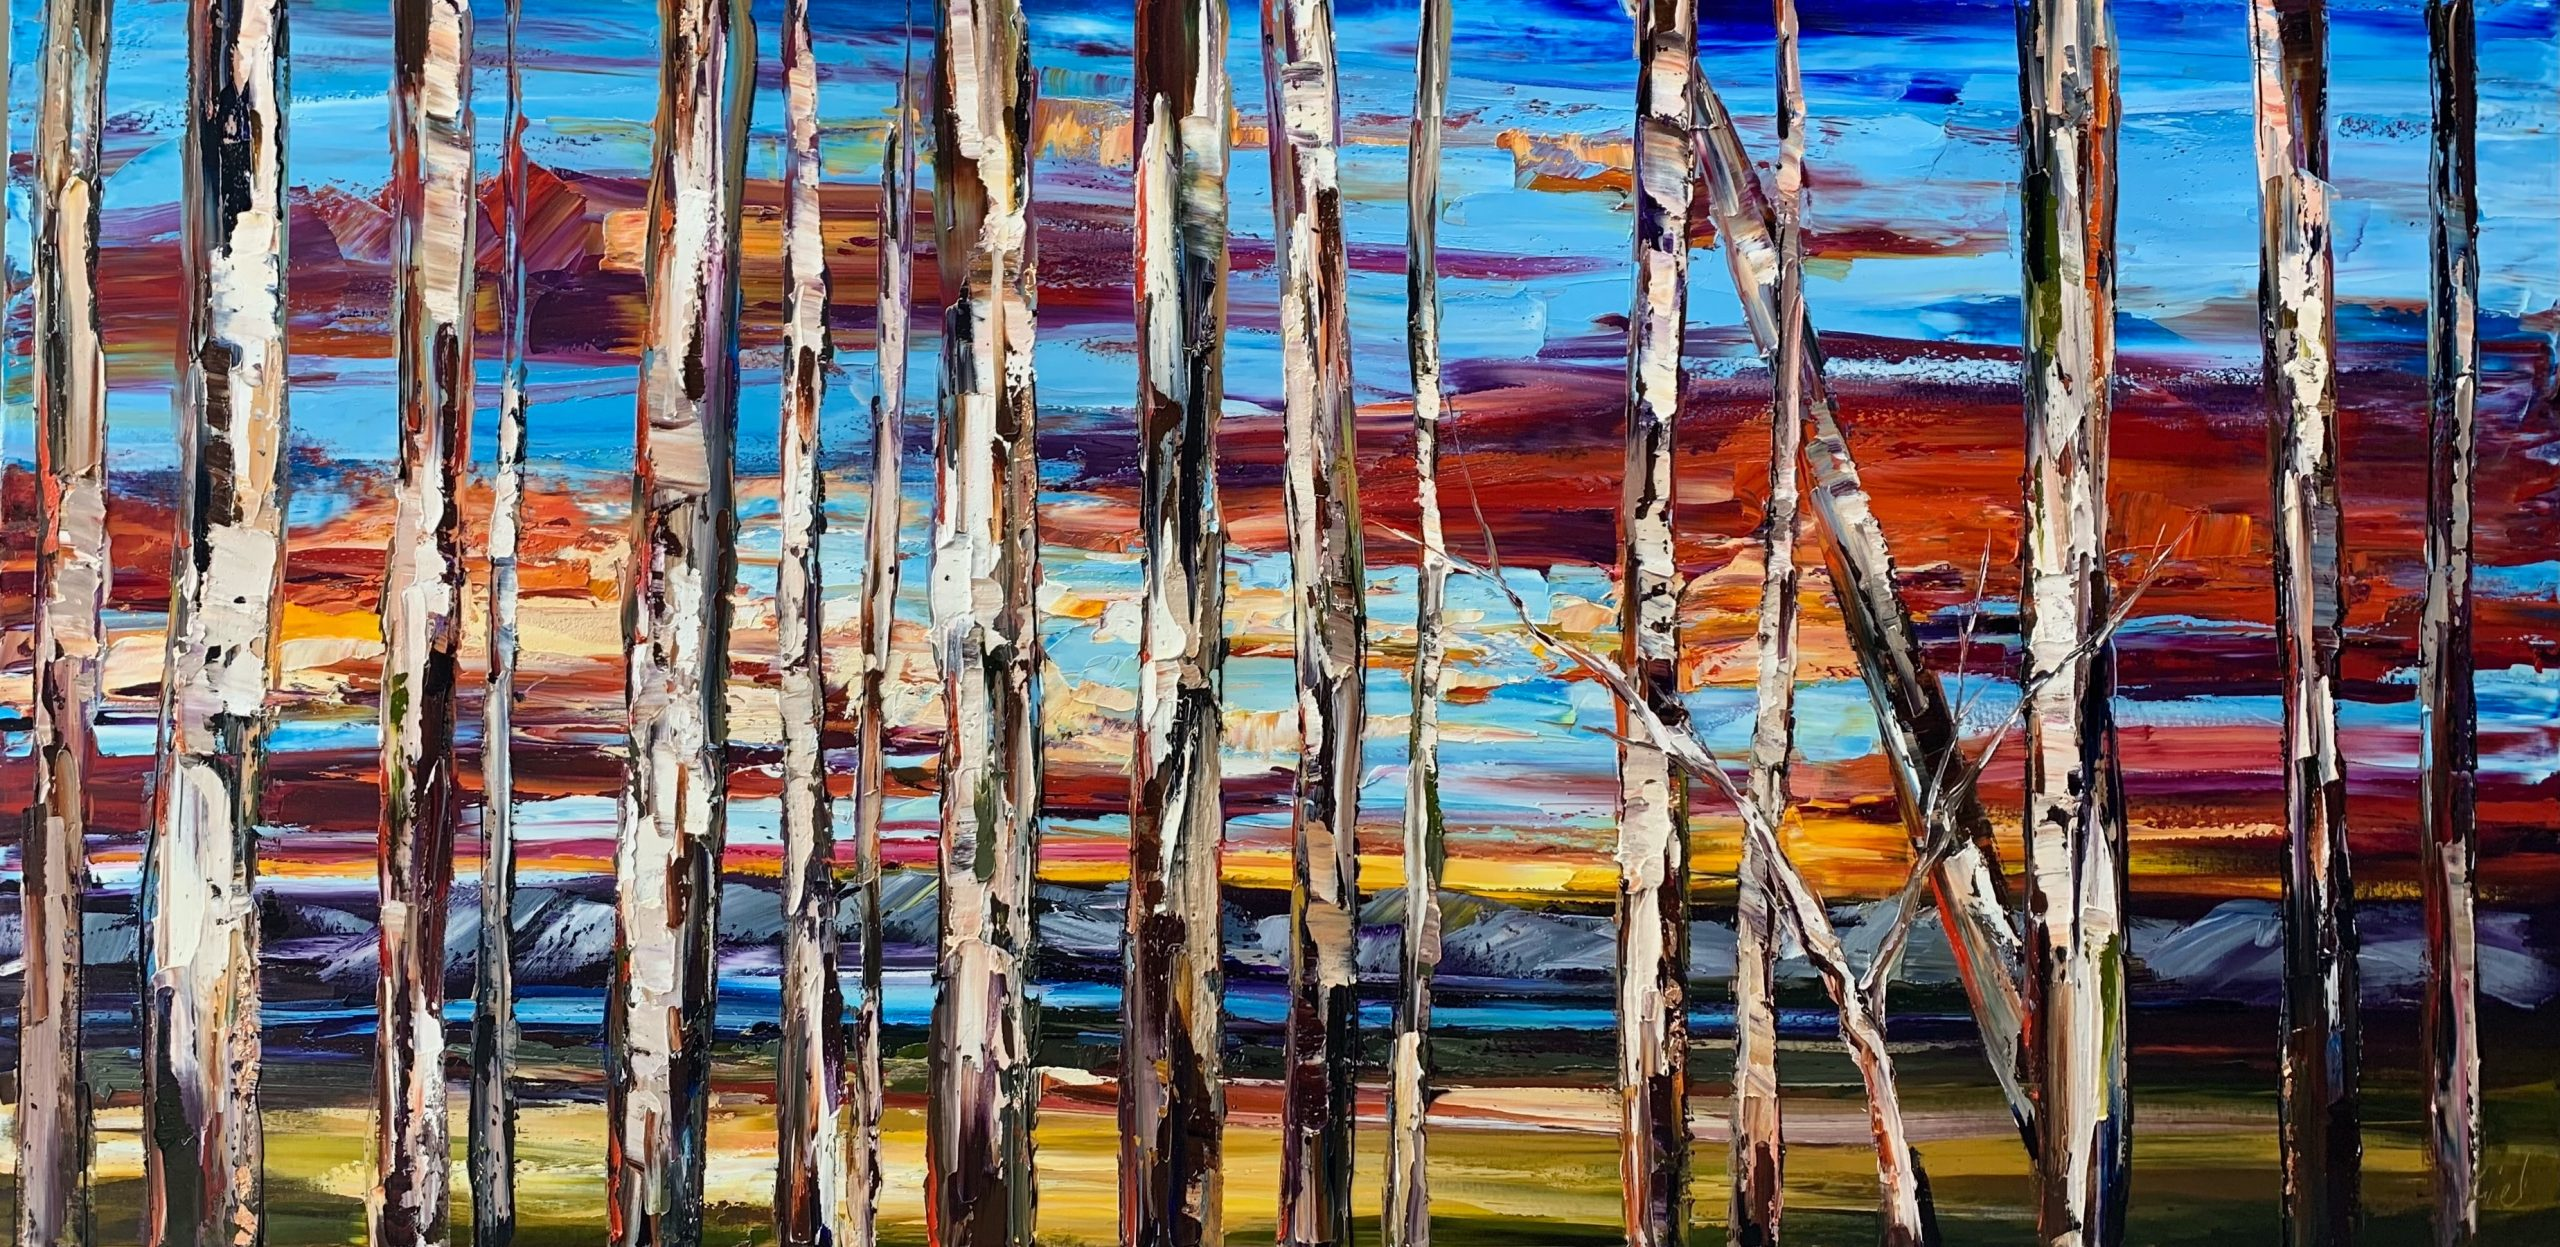 On the Road to Find Out, oil treescape painting by Kimberly Kiel | Effusion Art Gallery + Cast Glass Studio, Invermere BC